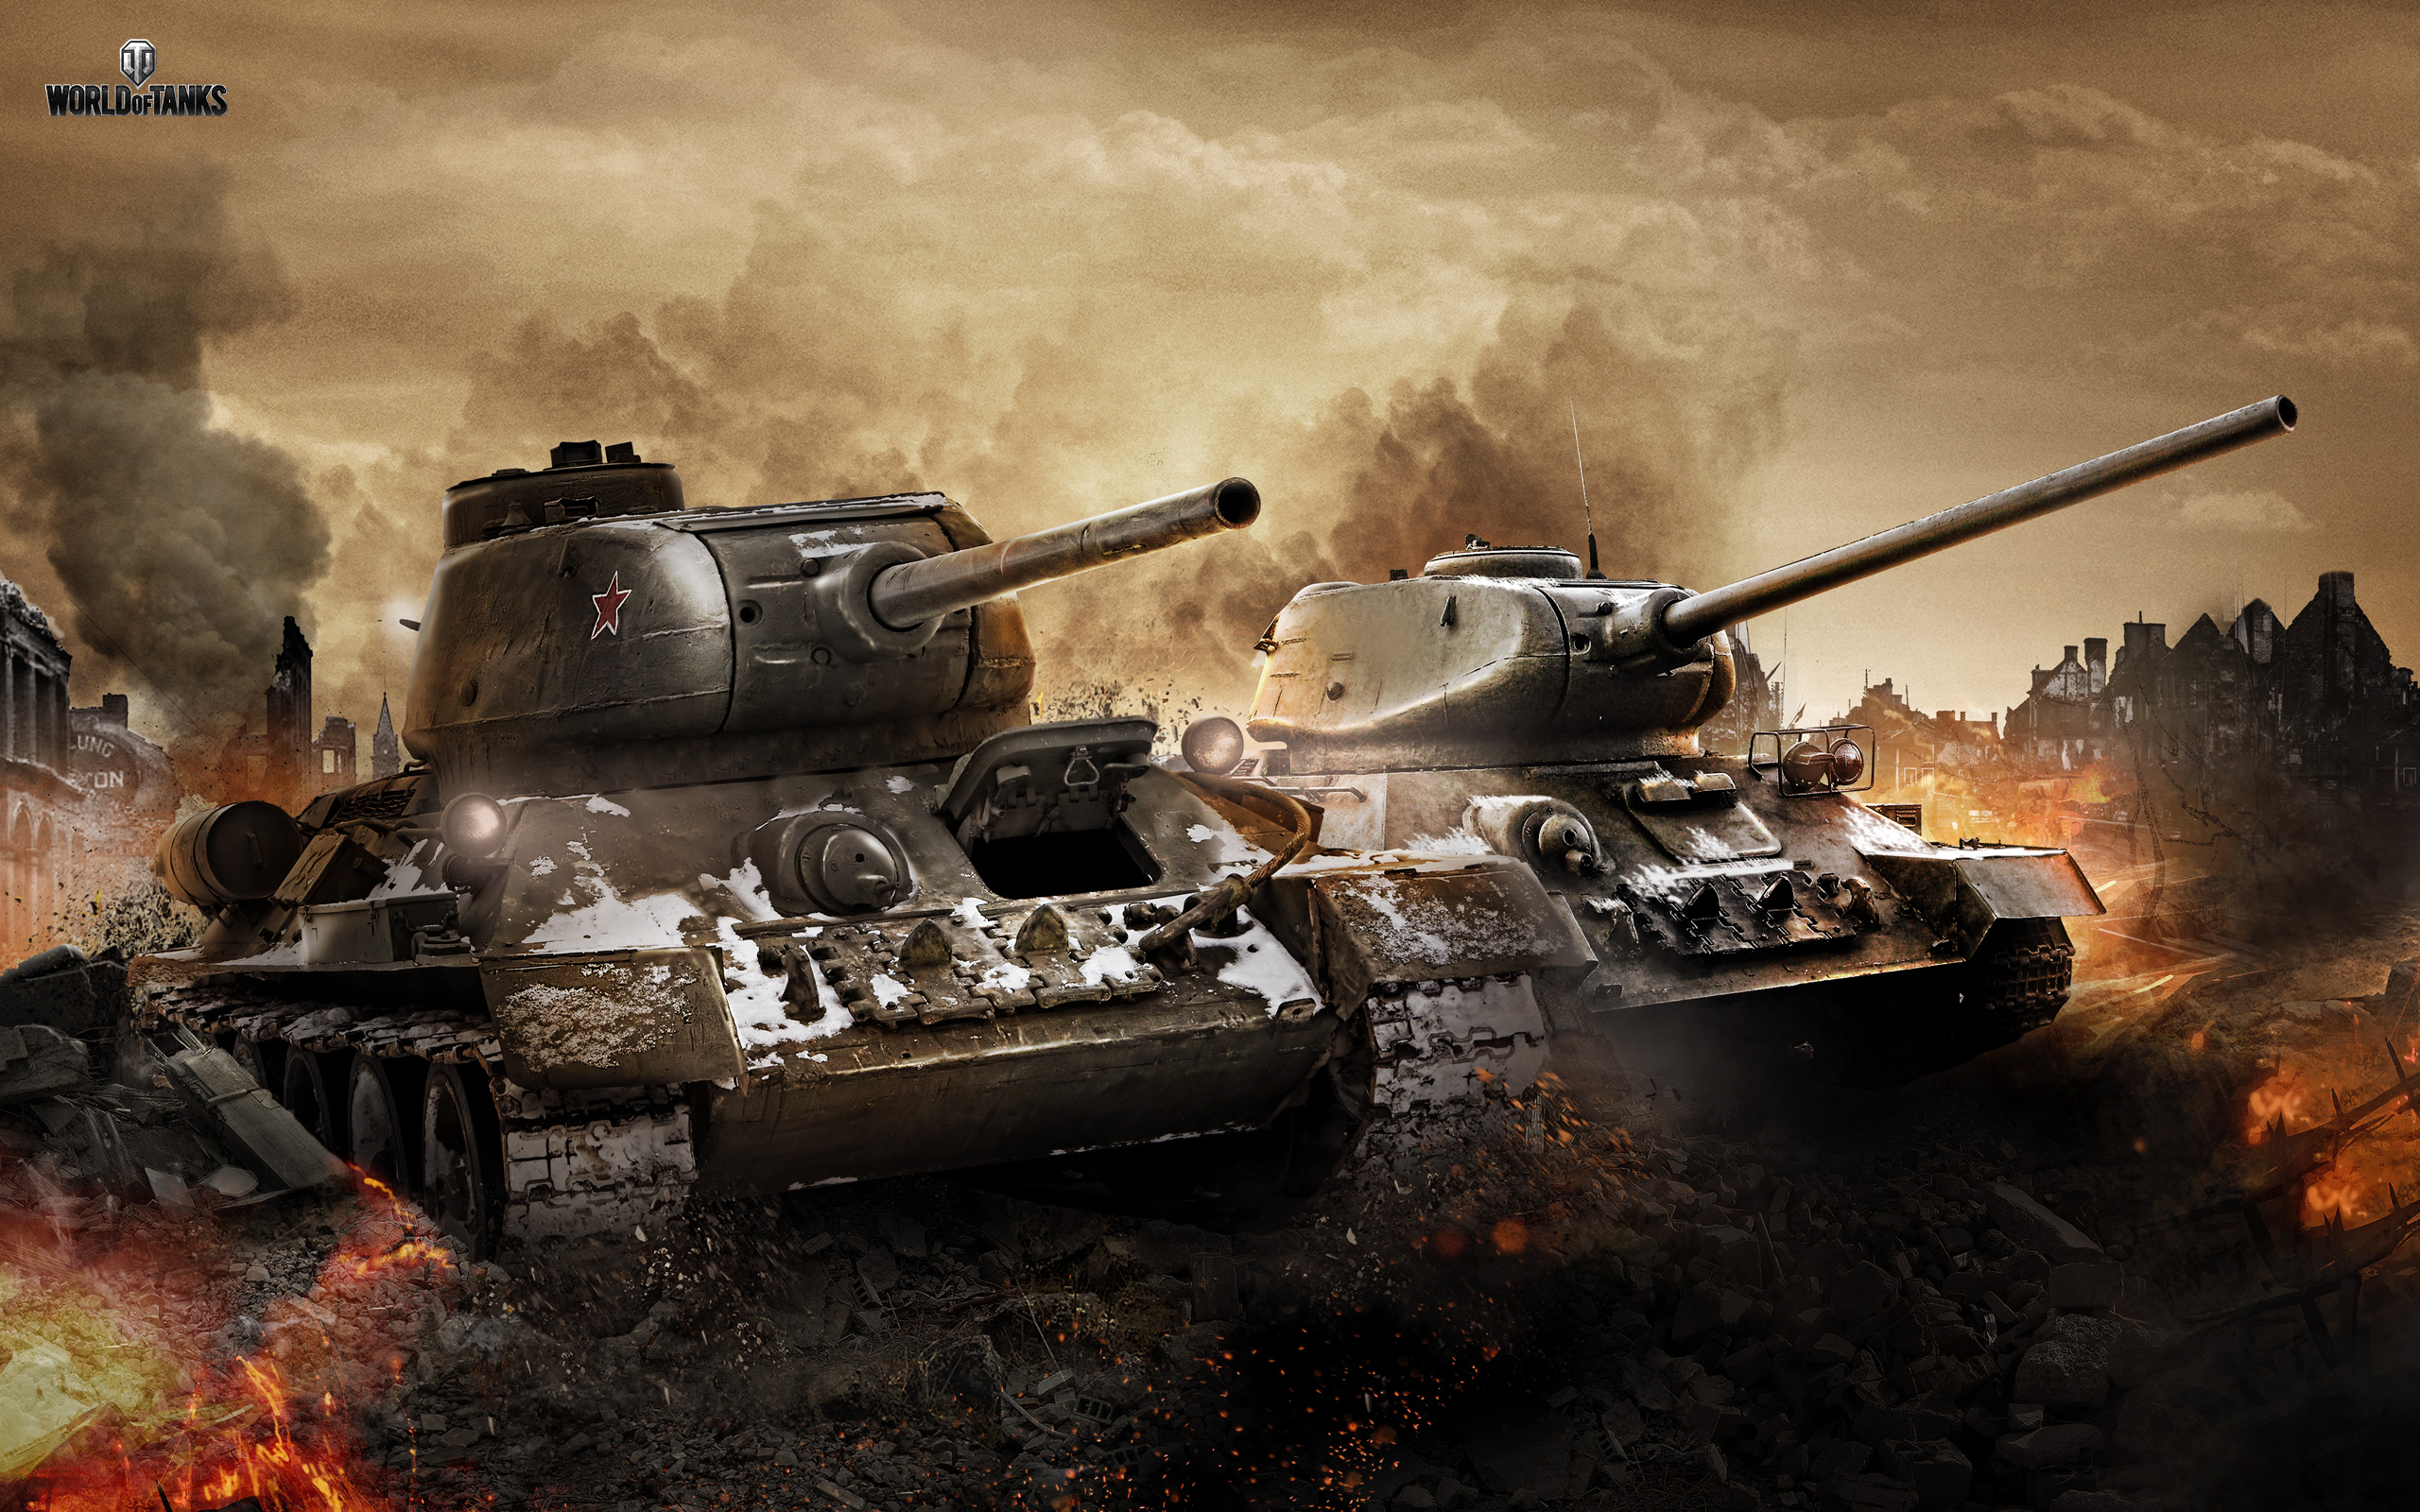 Tank of the Month May 2013: T-34 & T-34-85